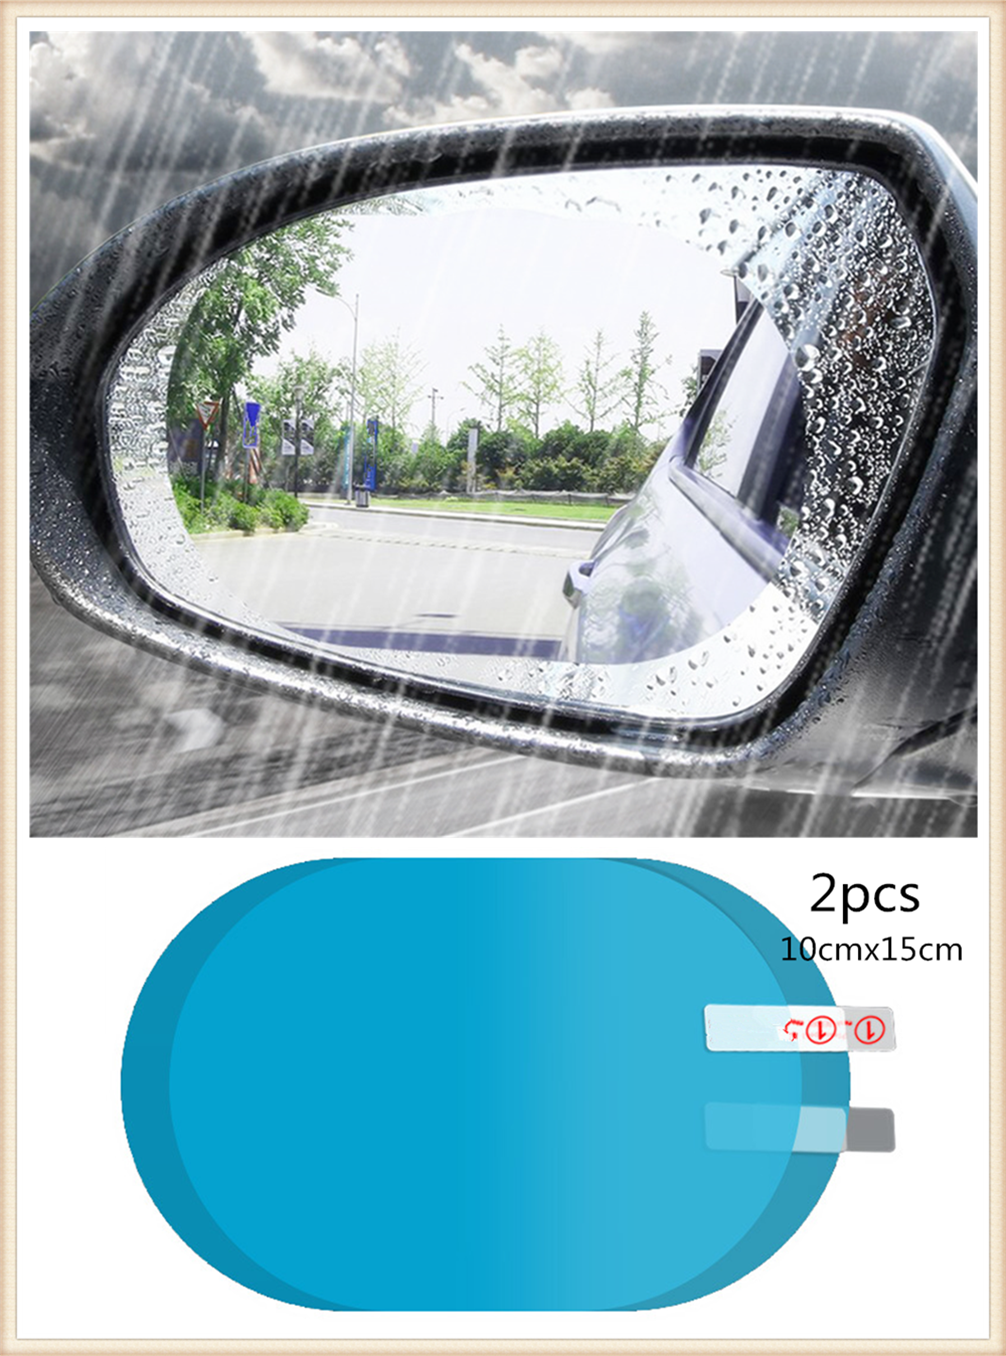 2PCS car rearview mirror anti-fog window clear rain protection auto parts for Volkswagen vw Tuhuan 1.4T Touareg2 New Beetle B6